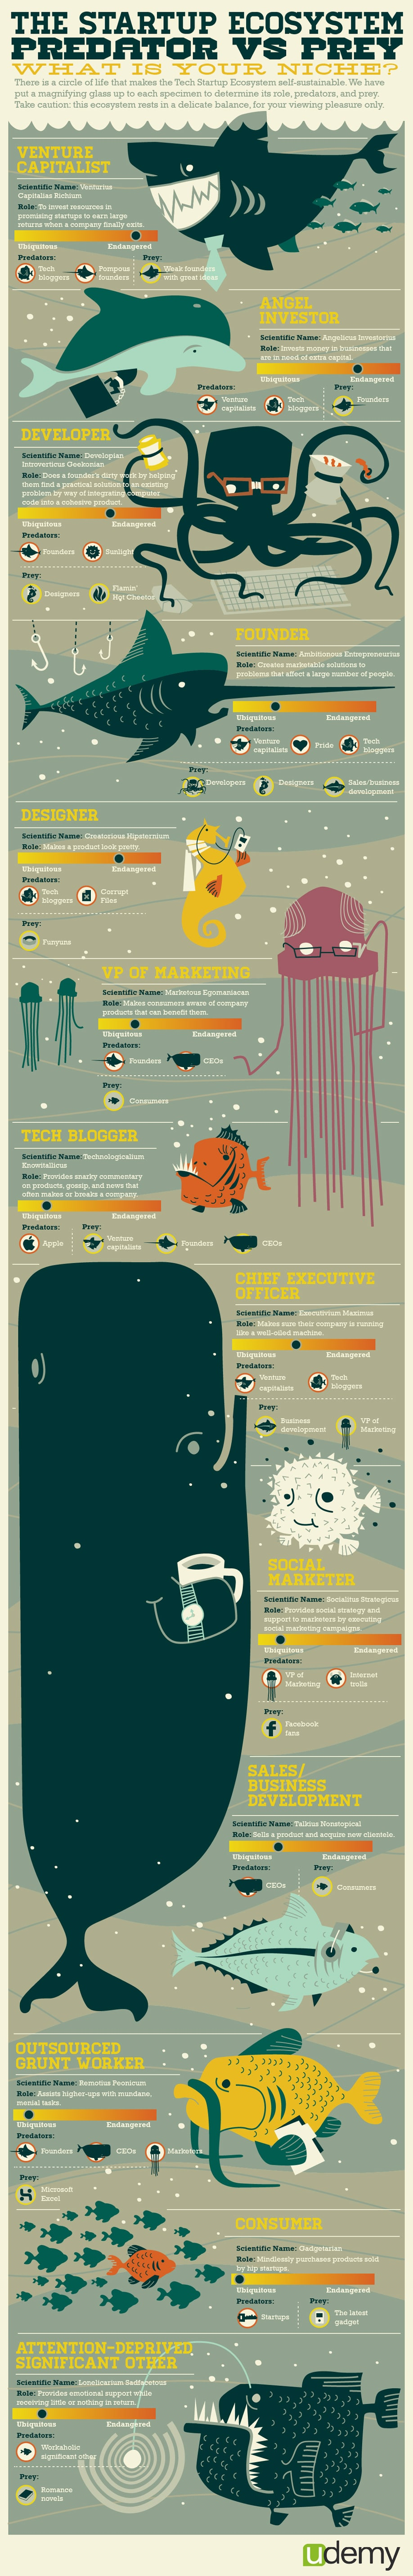 The Startup Ecosystem: Tech Roles Compared [Infographic]